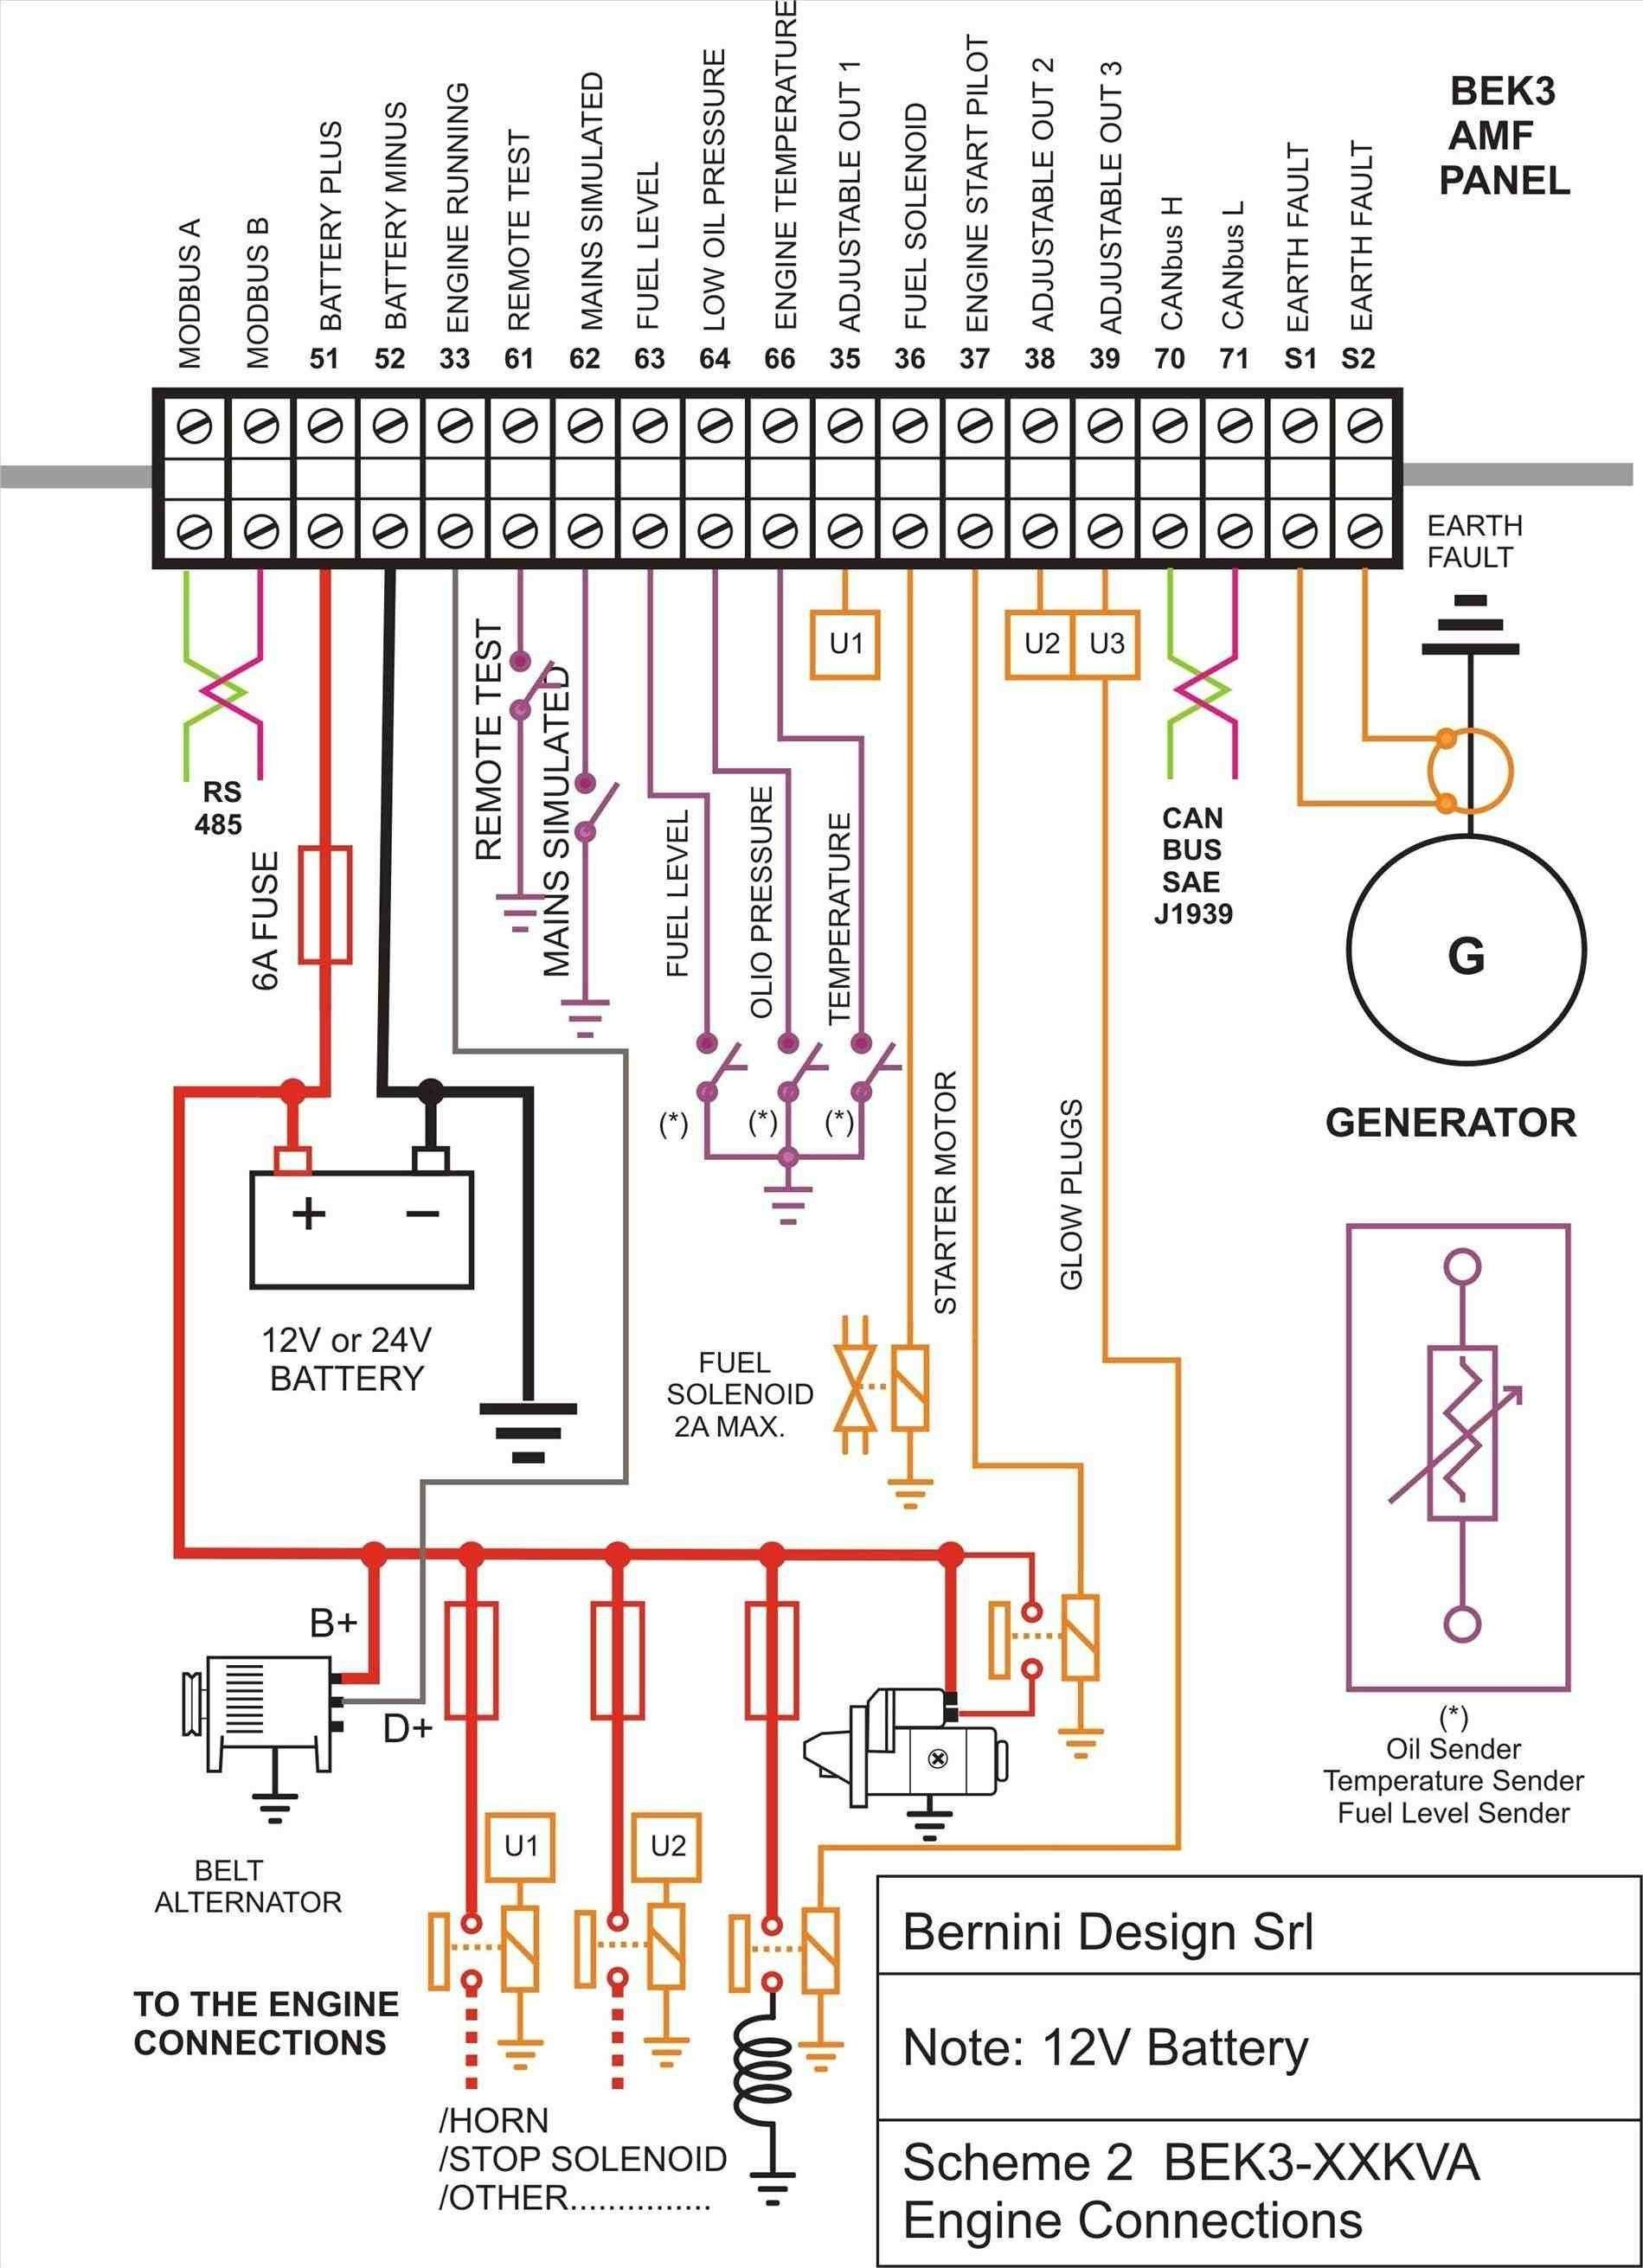 House Wiring Circuit Diagram Pdf Fresh Typical Wiring Diagram For House Valid Nice Electrical Circuit Diagram Electrical Wiring Diagram Electrical Panel Wiring